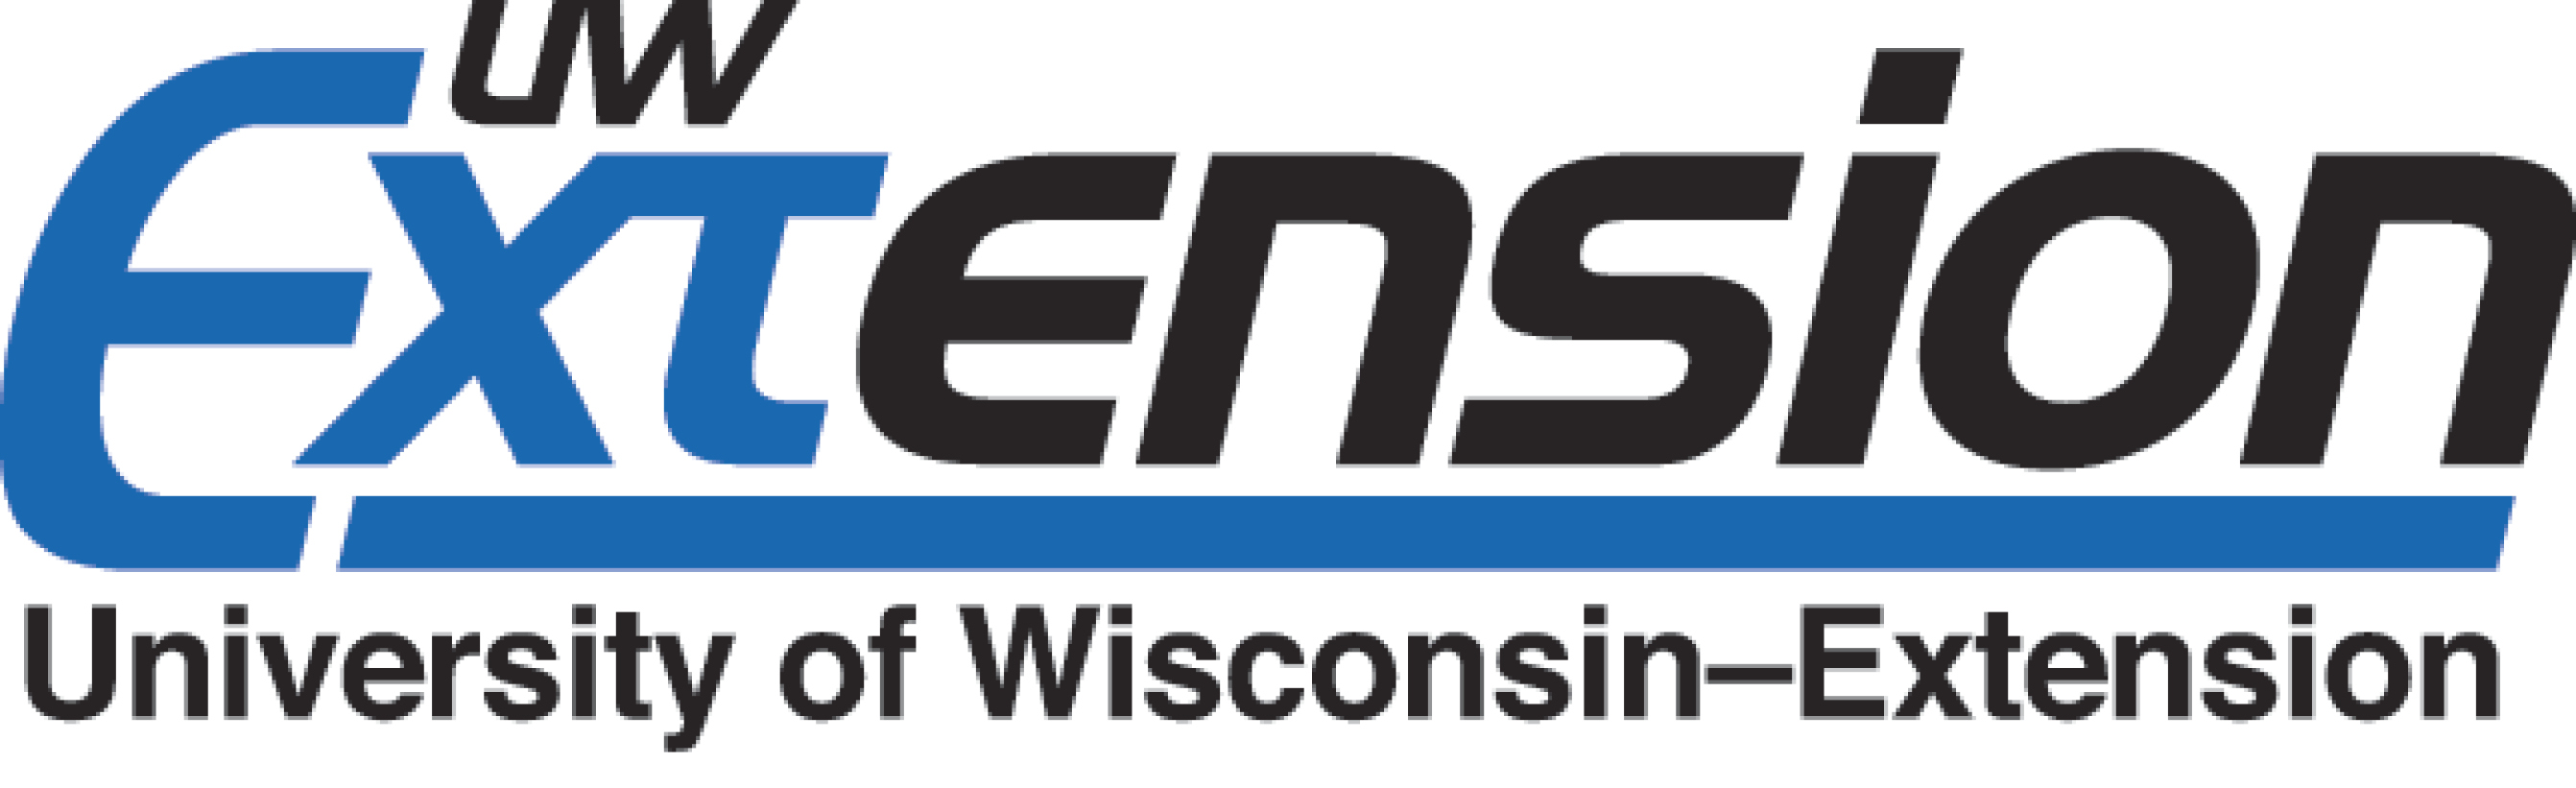 UW-Extension logo